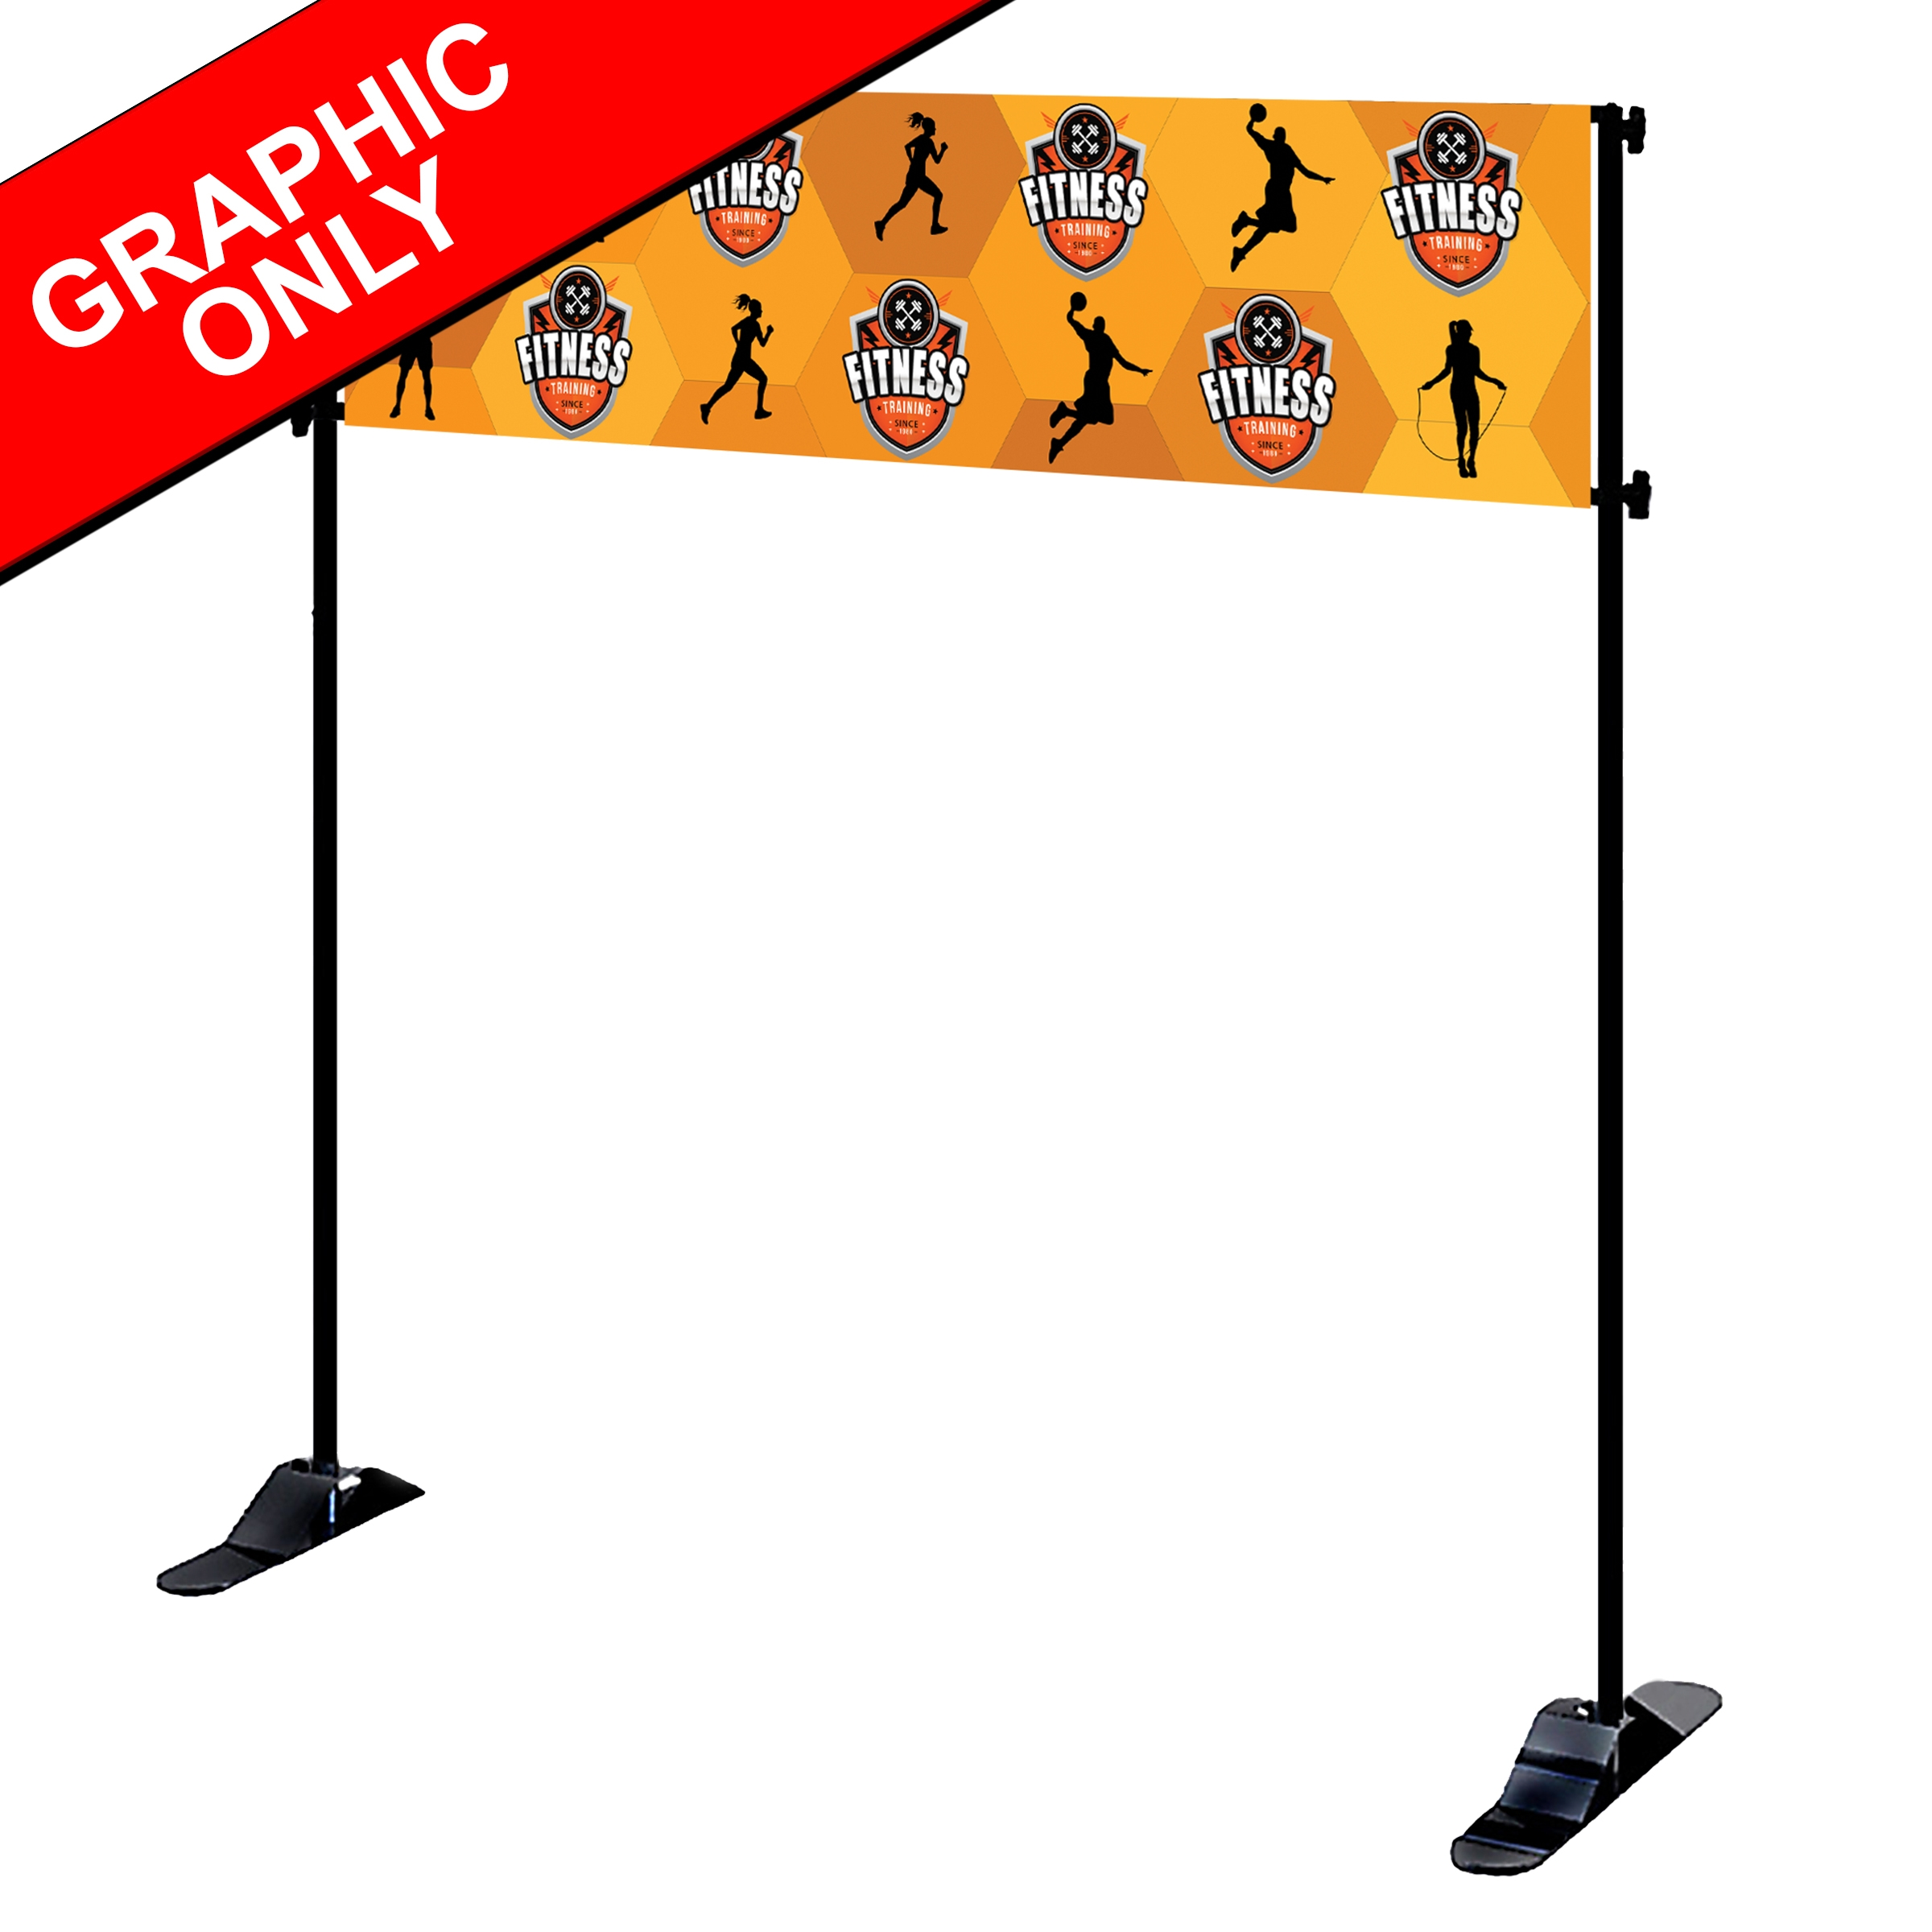 Mighty Banner Display -  8' x 2' Fabric Graphic Only